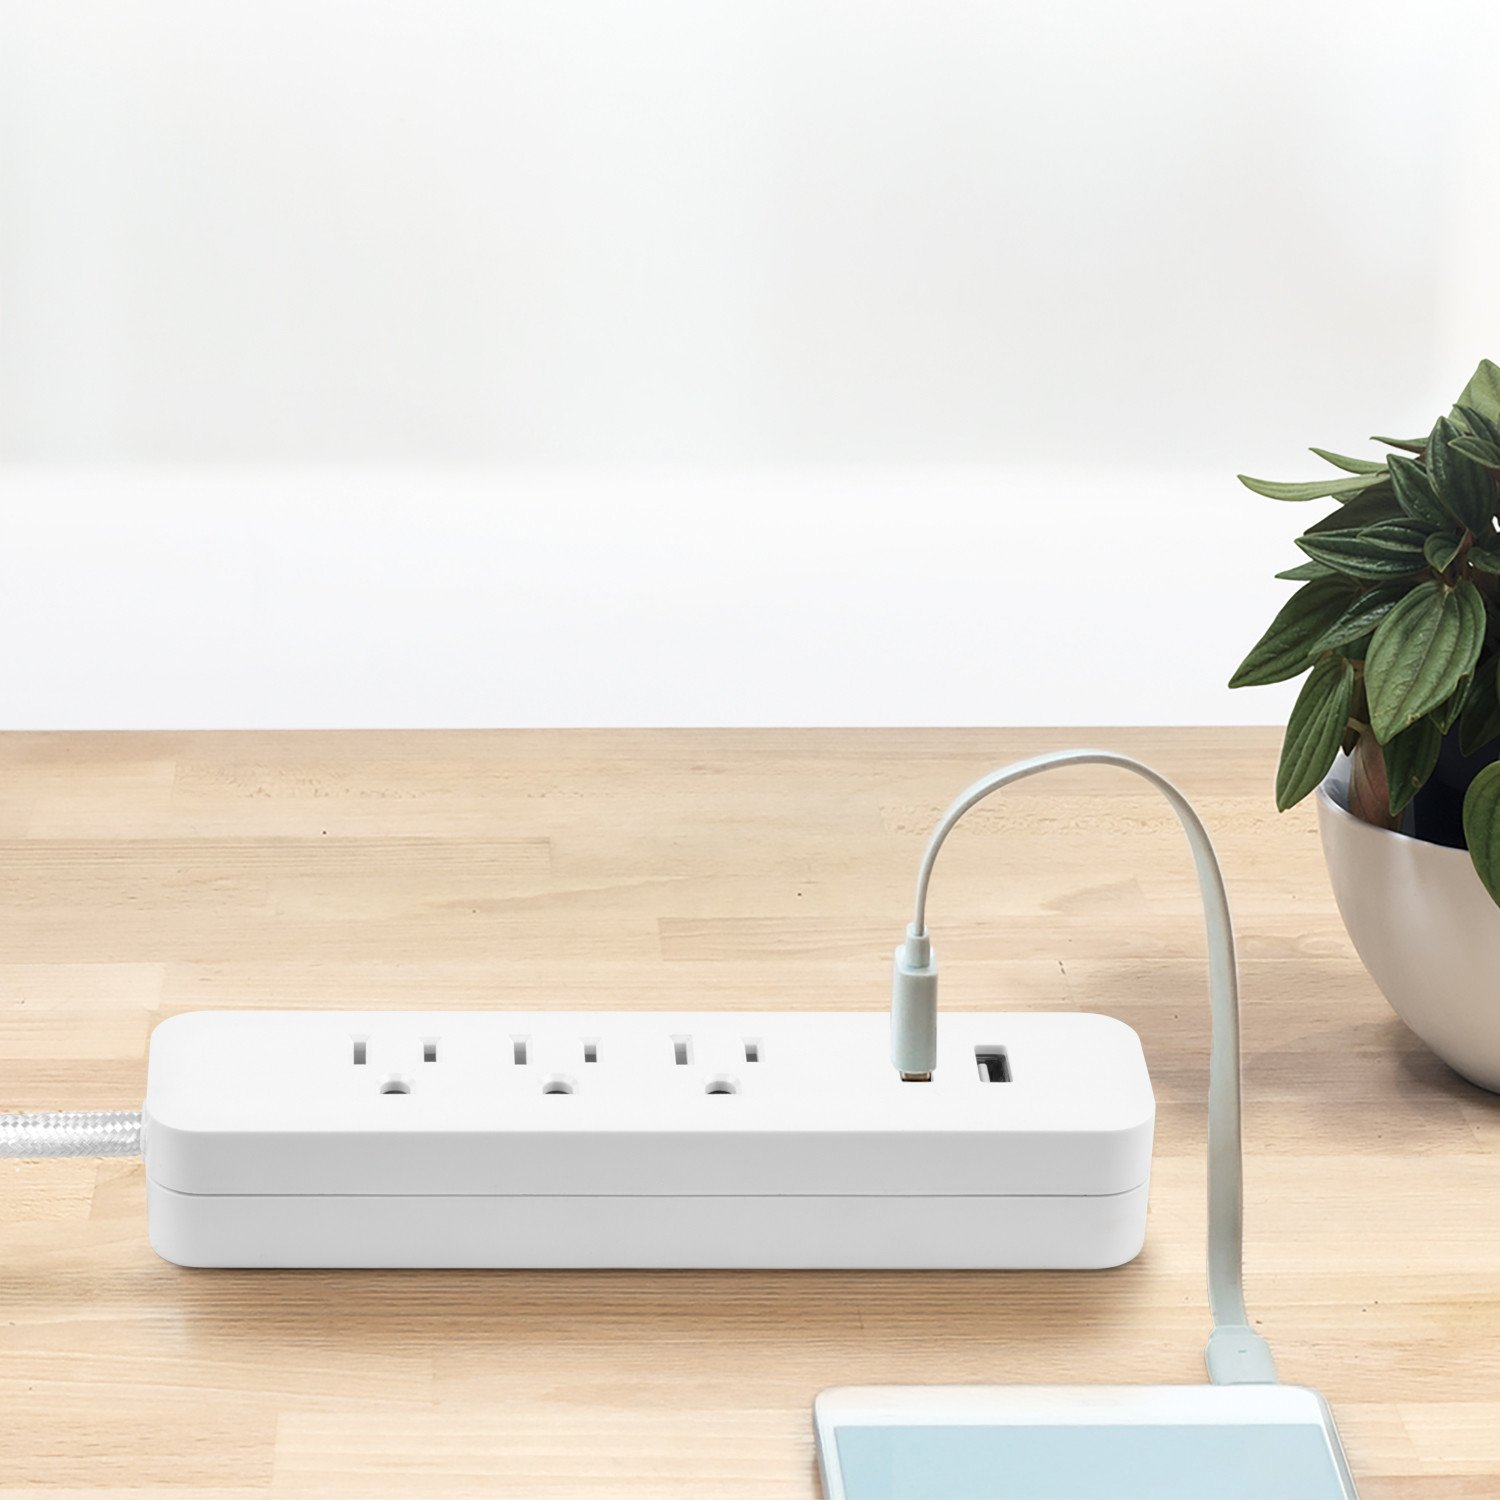 Globe Electric 78251 Designer Series 6ft 3-Outlet Power Strip, 2x USB Ports, Surge Protector Finish, White by Globe Electric (Image #4)